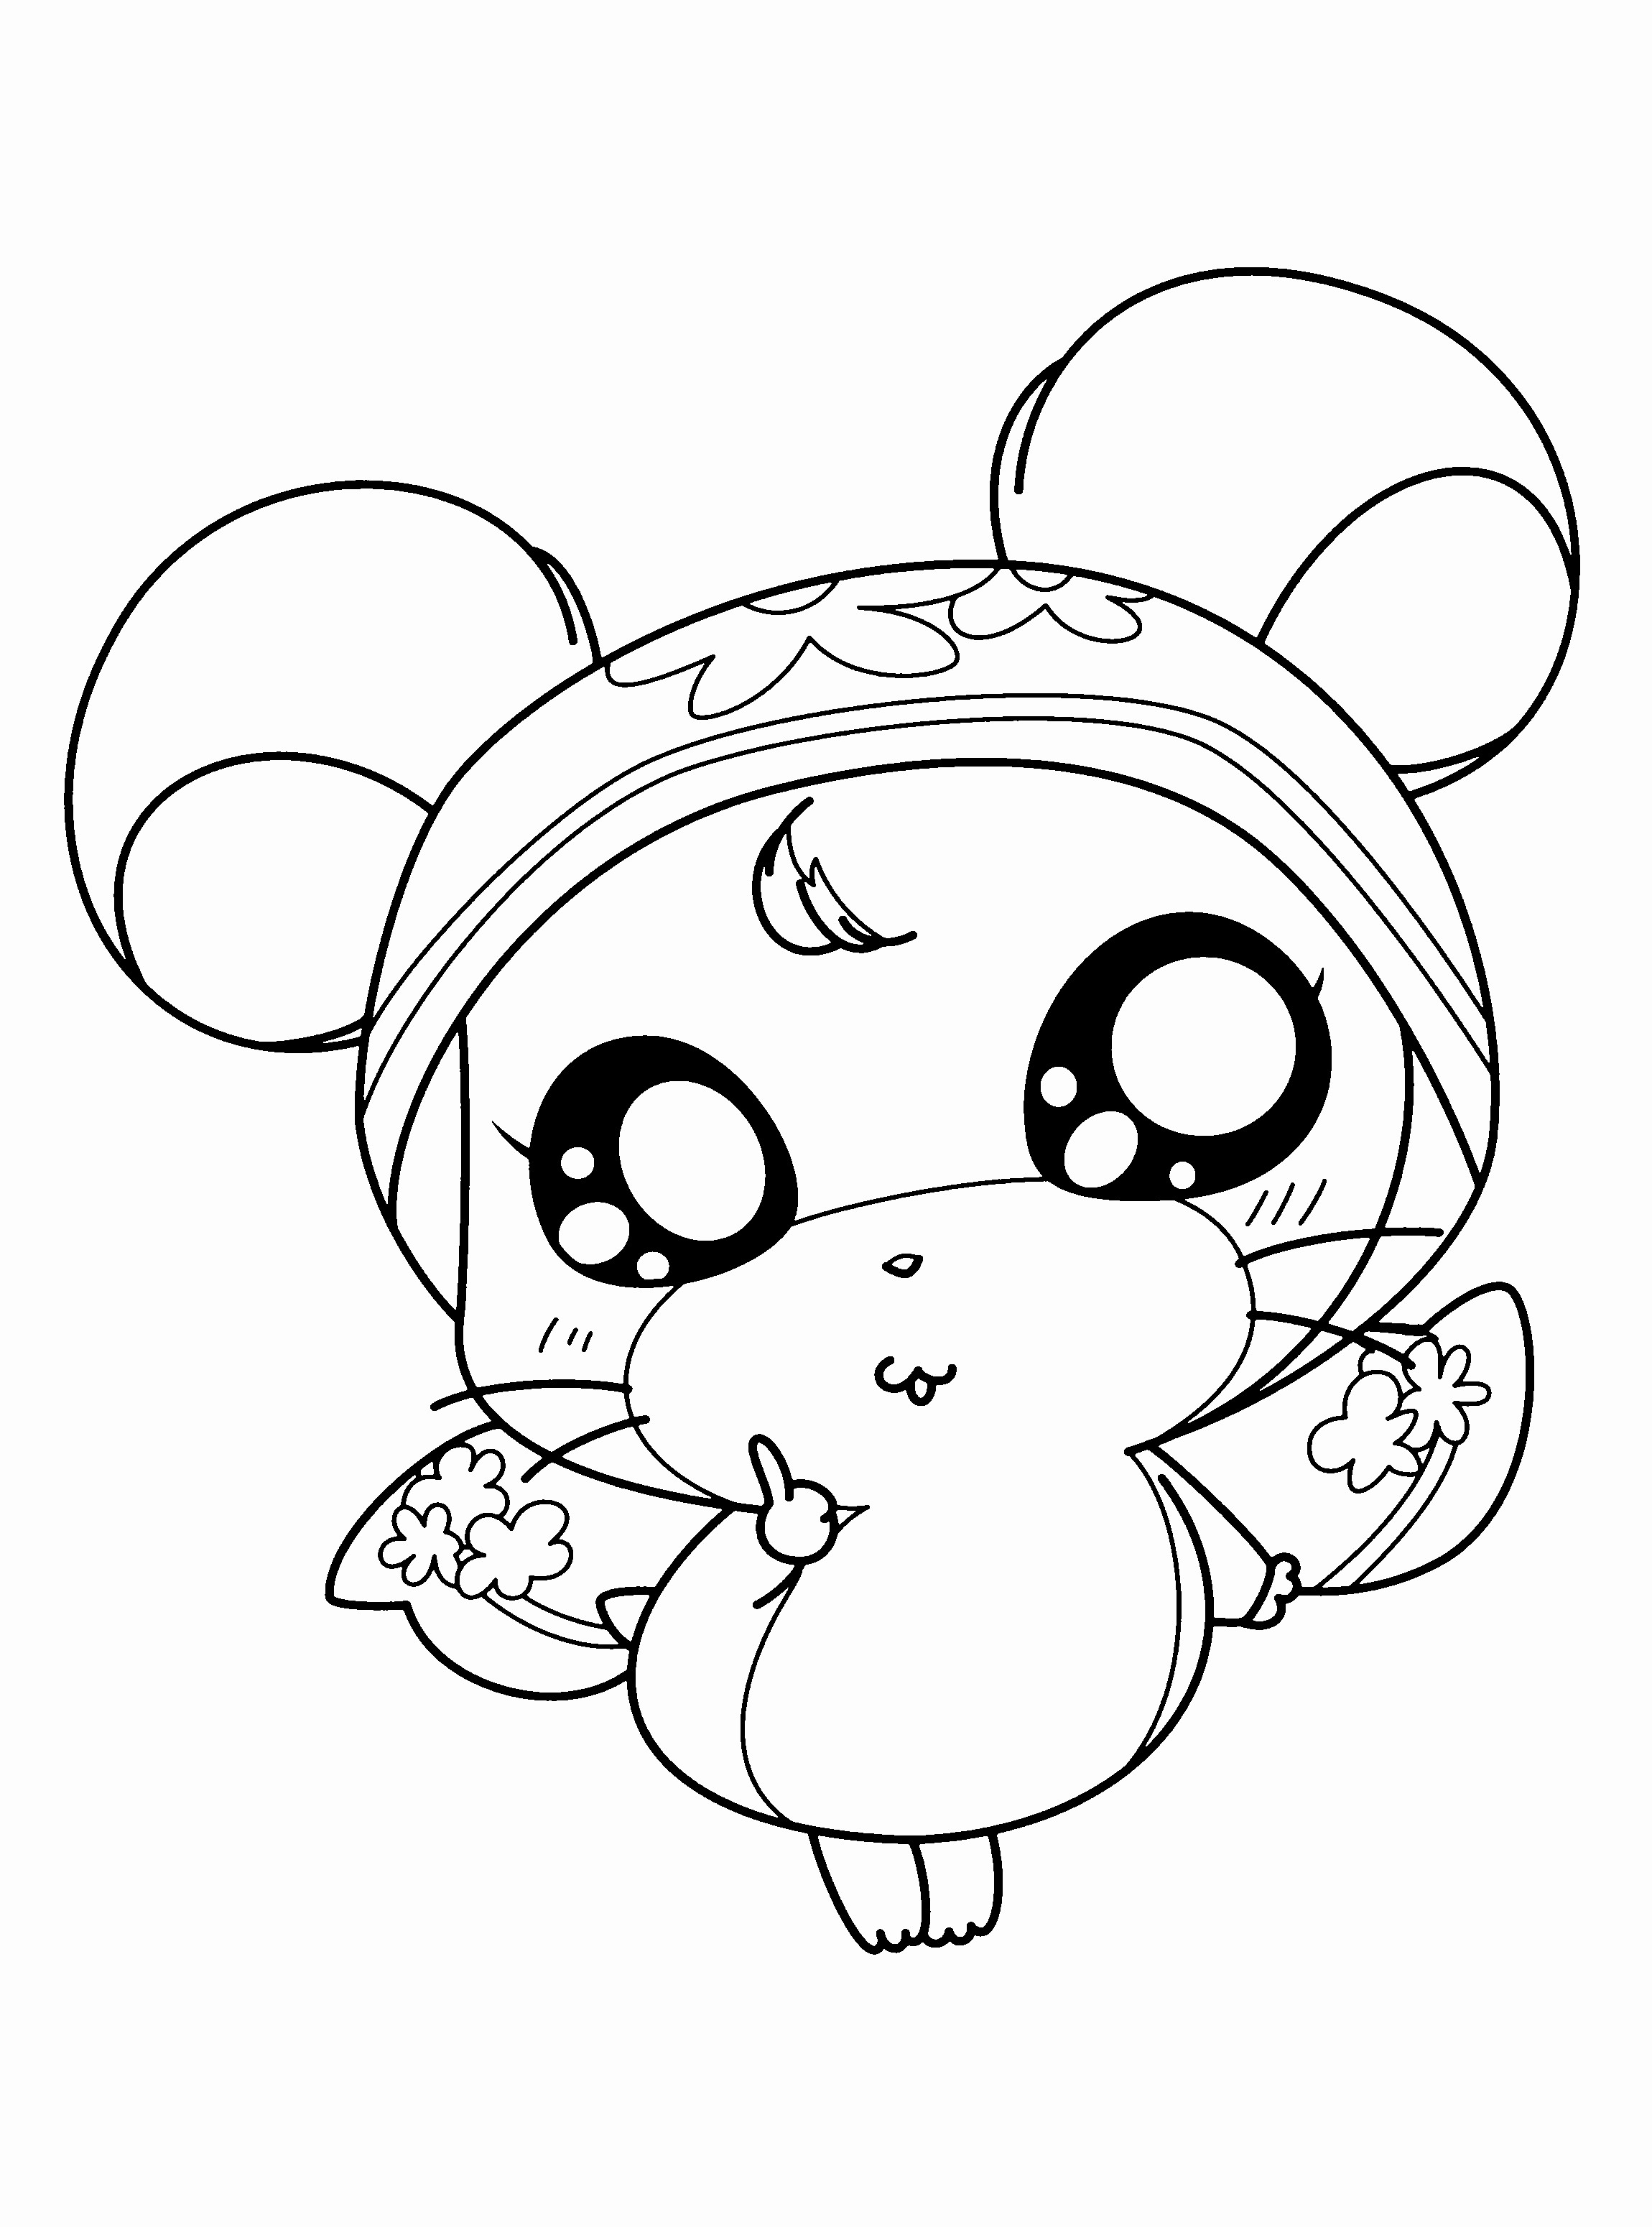 sloth pictures to print cute sloth coloring pages at getcoloringscom free pictures sloth print to